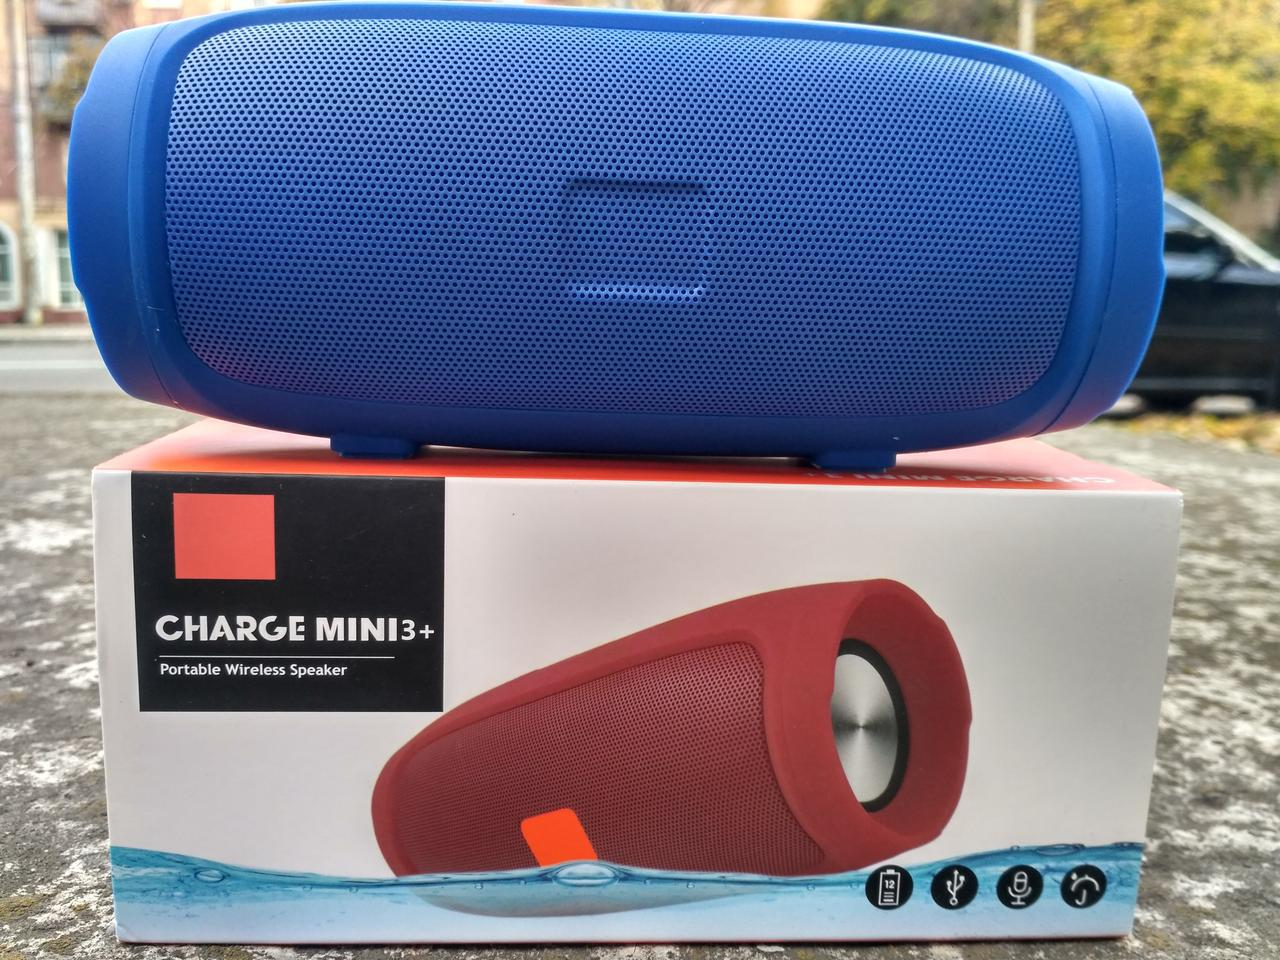 Bluetooth Jbl Charge Mini 3 Speaker Portable Wireless Charger 1